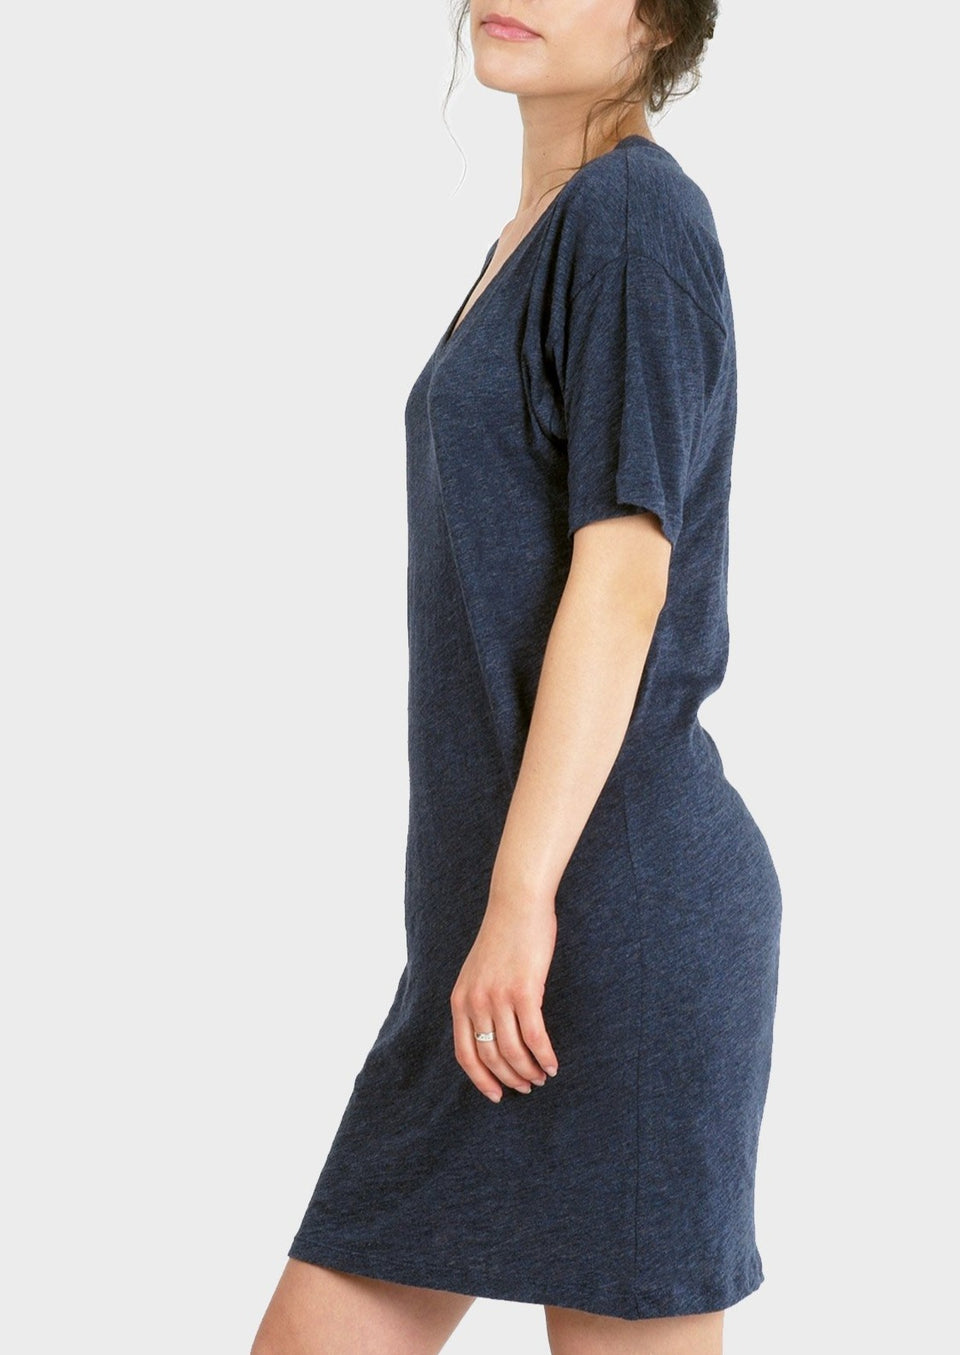 Mika T-shirt Dress in Heather Lake